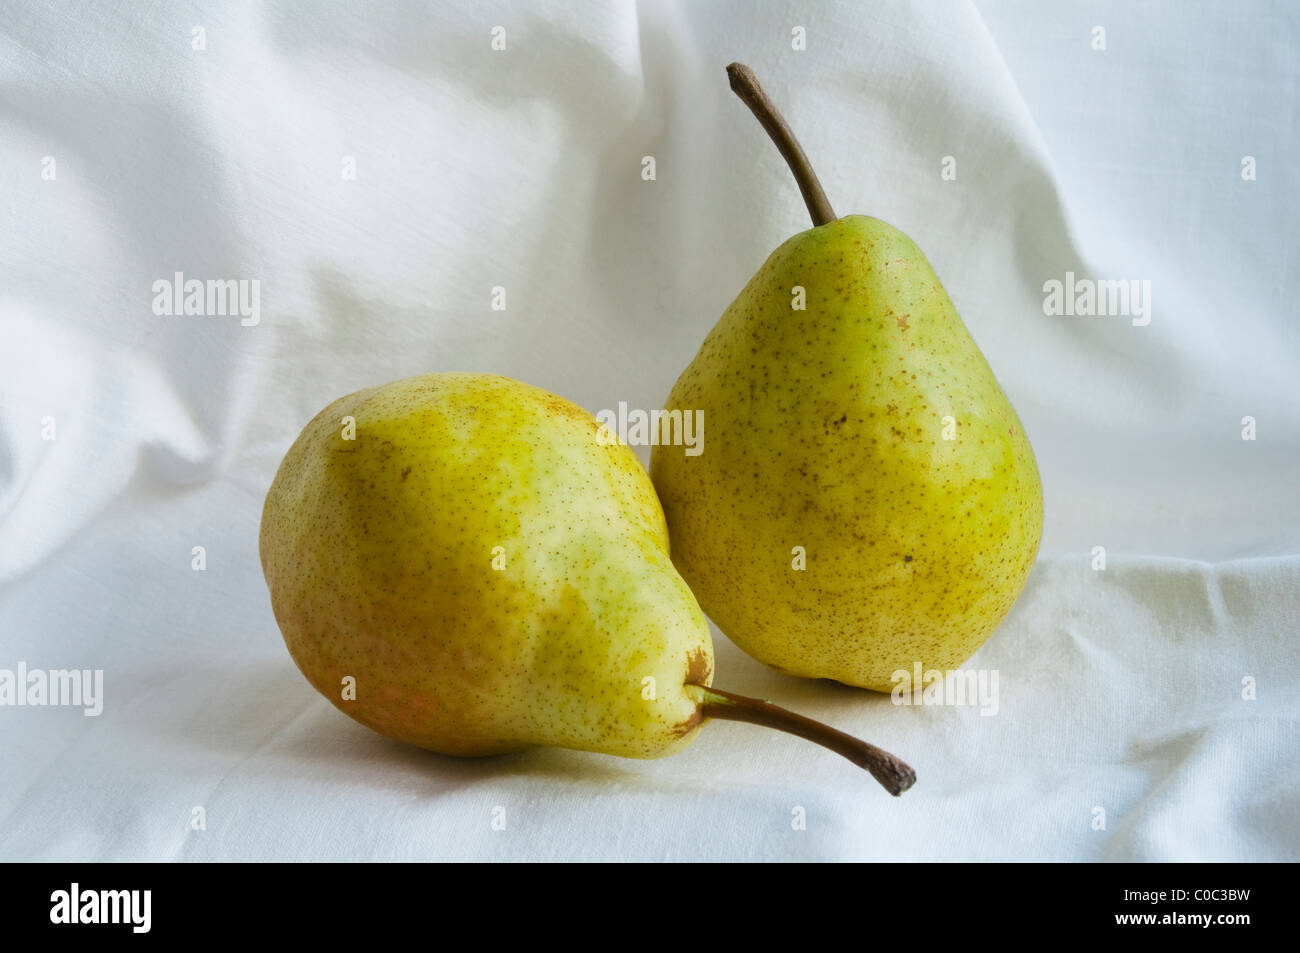 Williams Pears on a white cloth background. - Stock Image